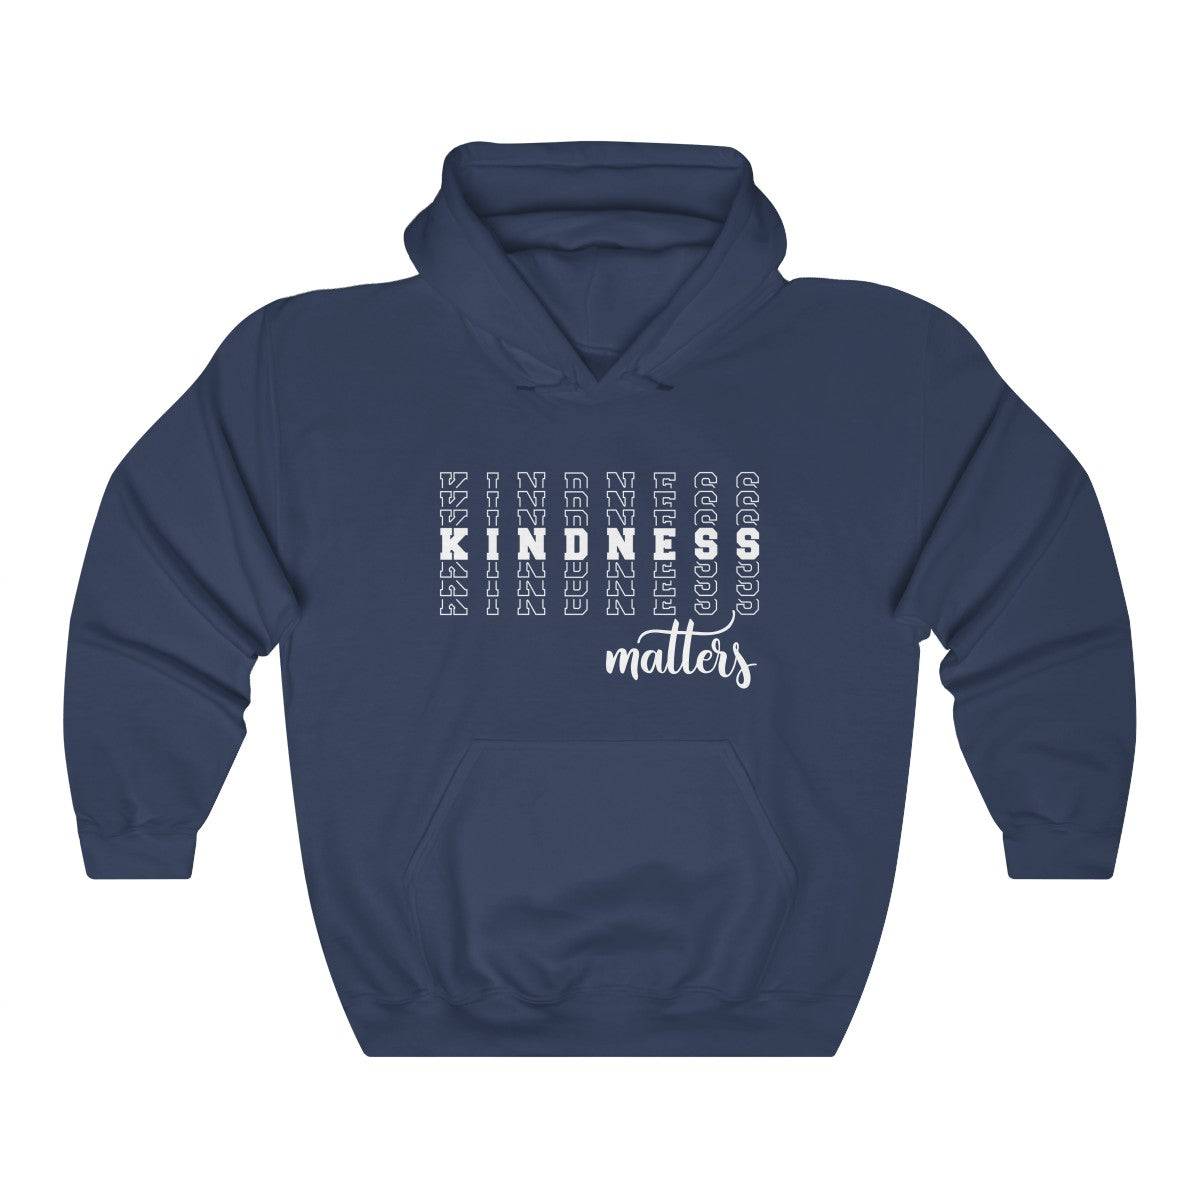 Kindness Matters Unisex Heavy Blend™ Hooded Sweatshirt - skyrockettees